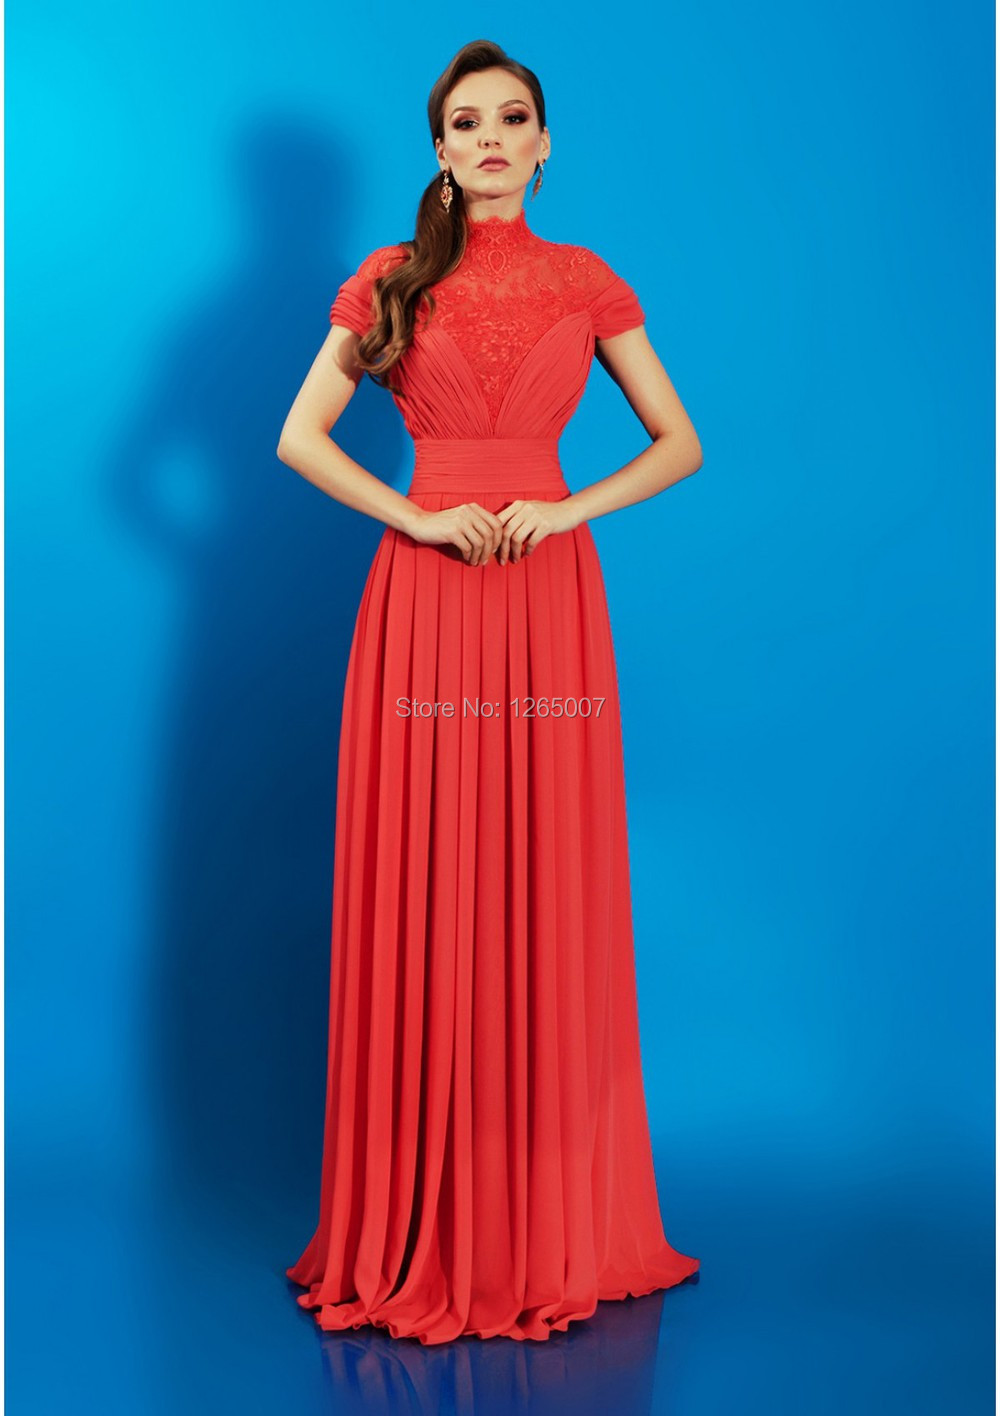 High Neck Short Sleeve Long Formal Dresses